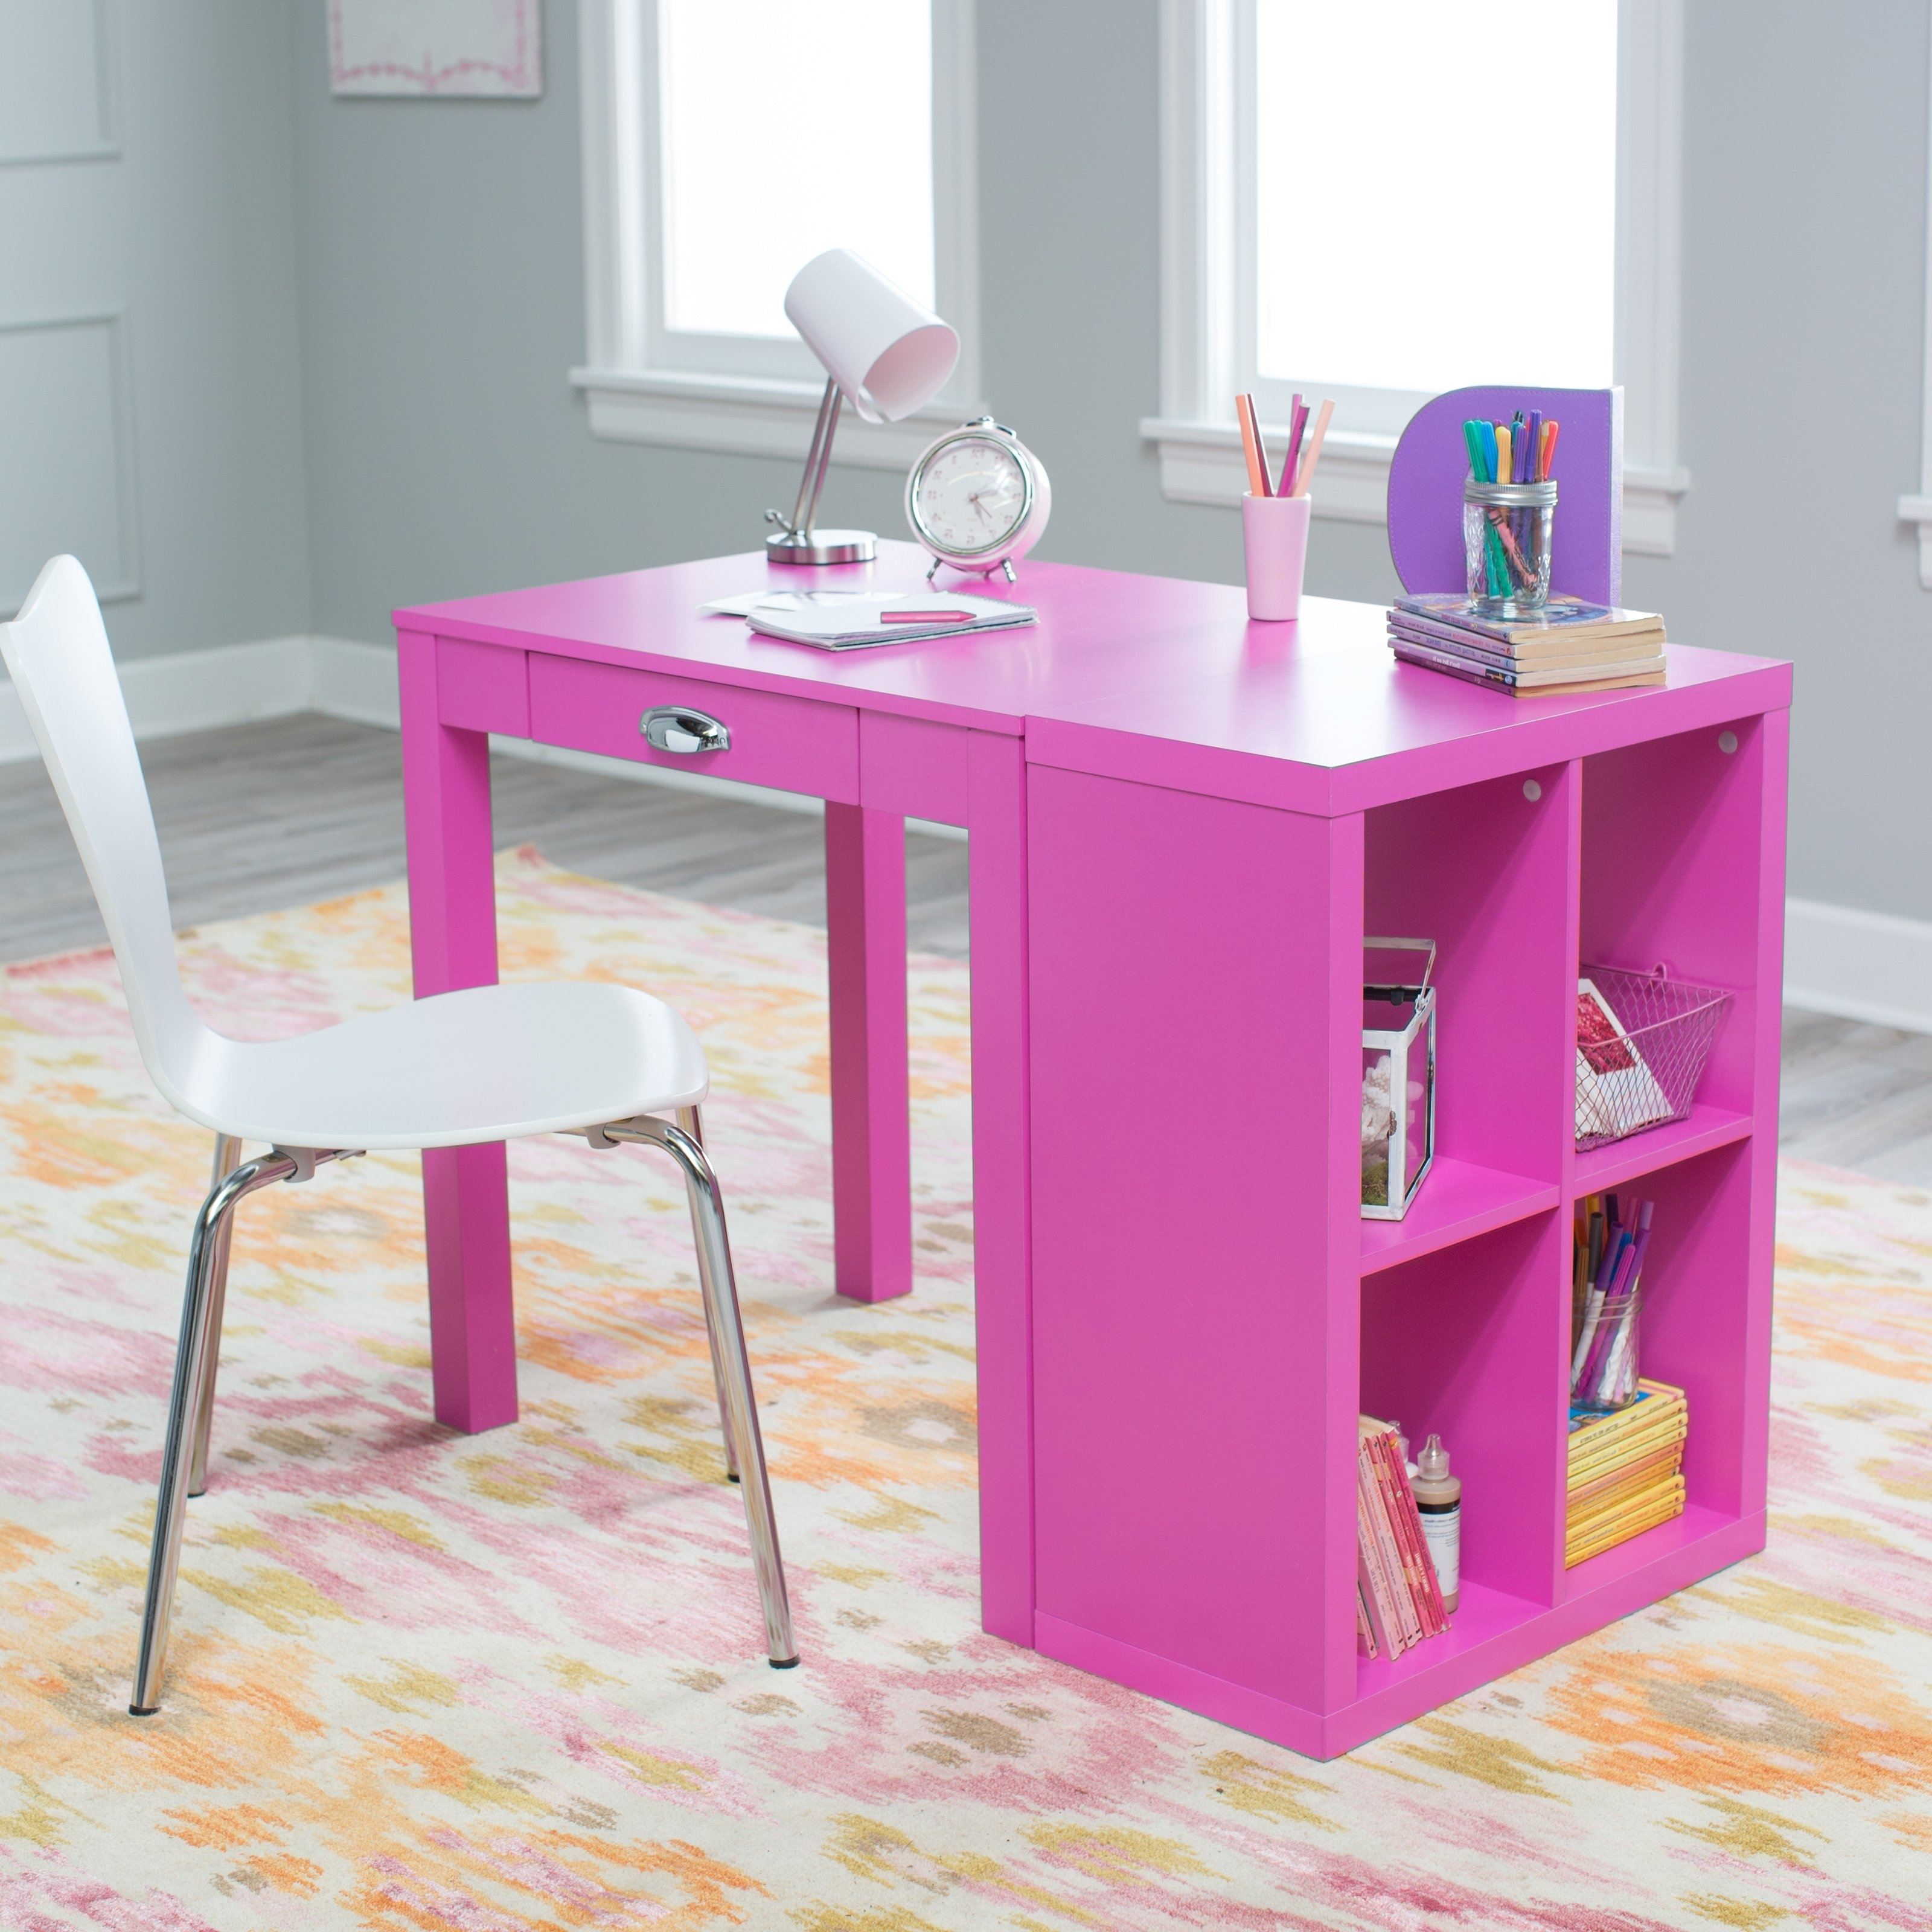 day friend a from ss delivery bookcase address next htm s p img pink email kiddi